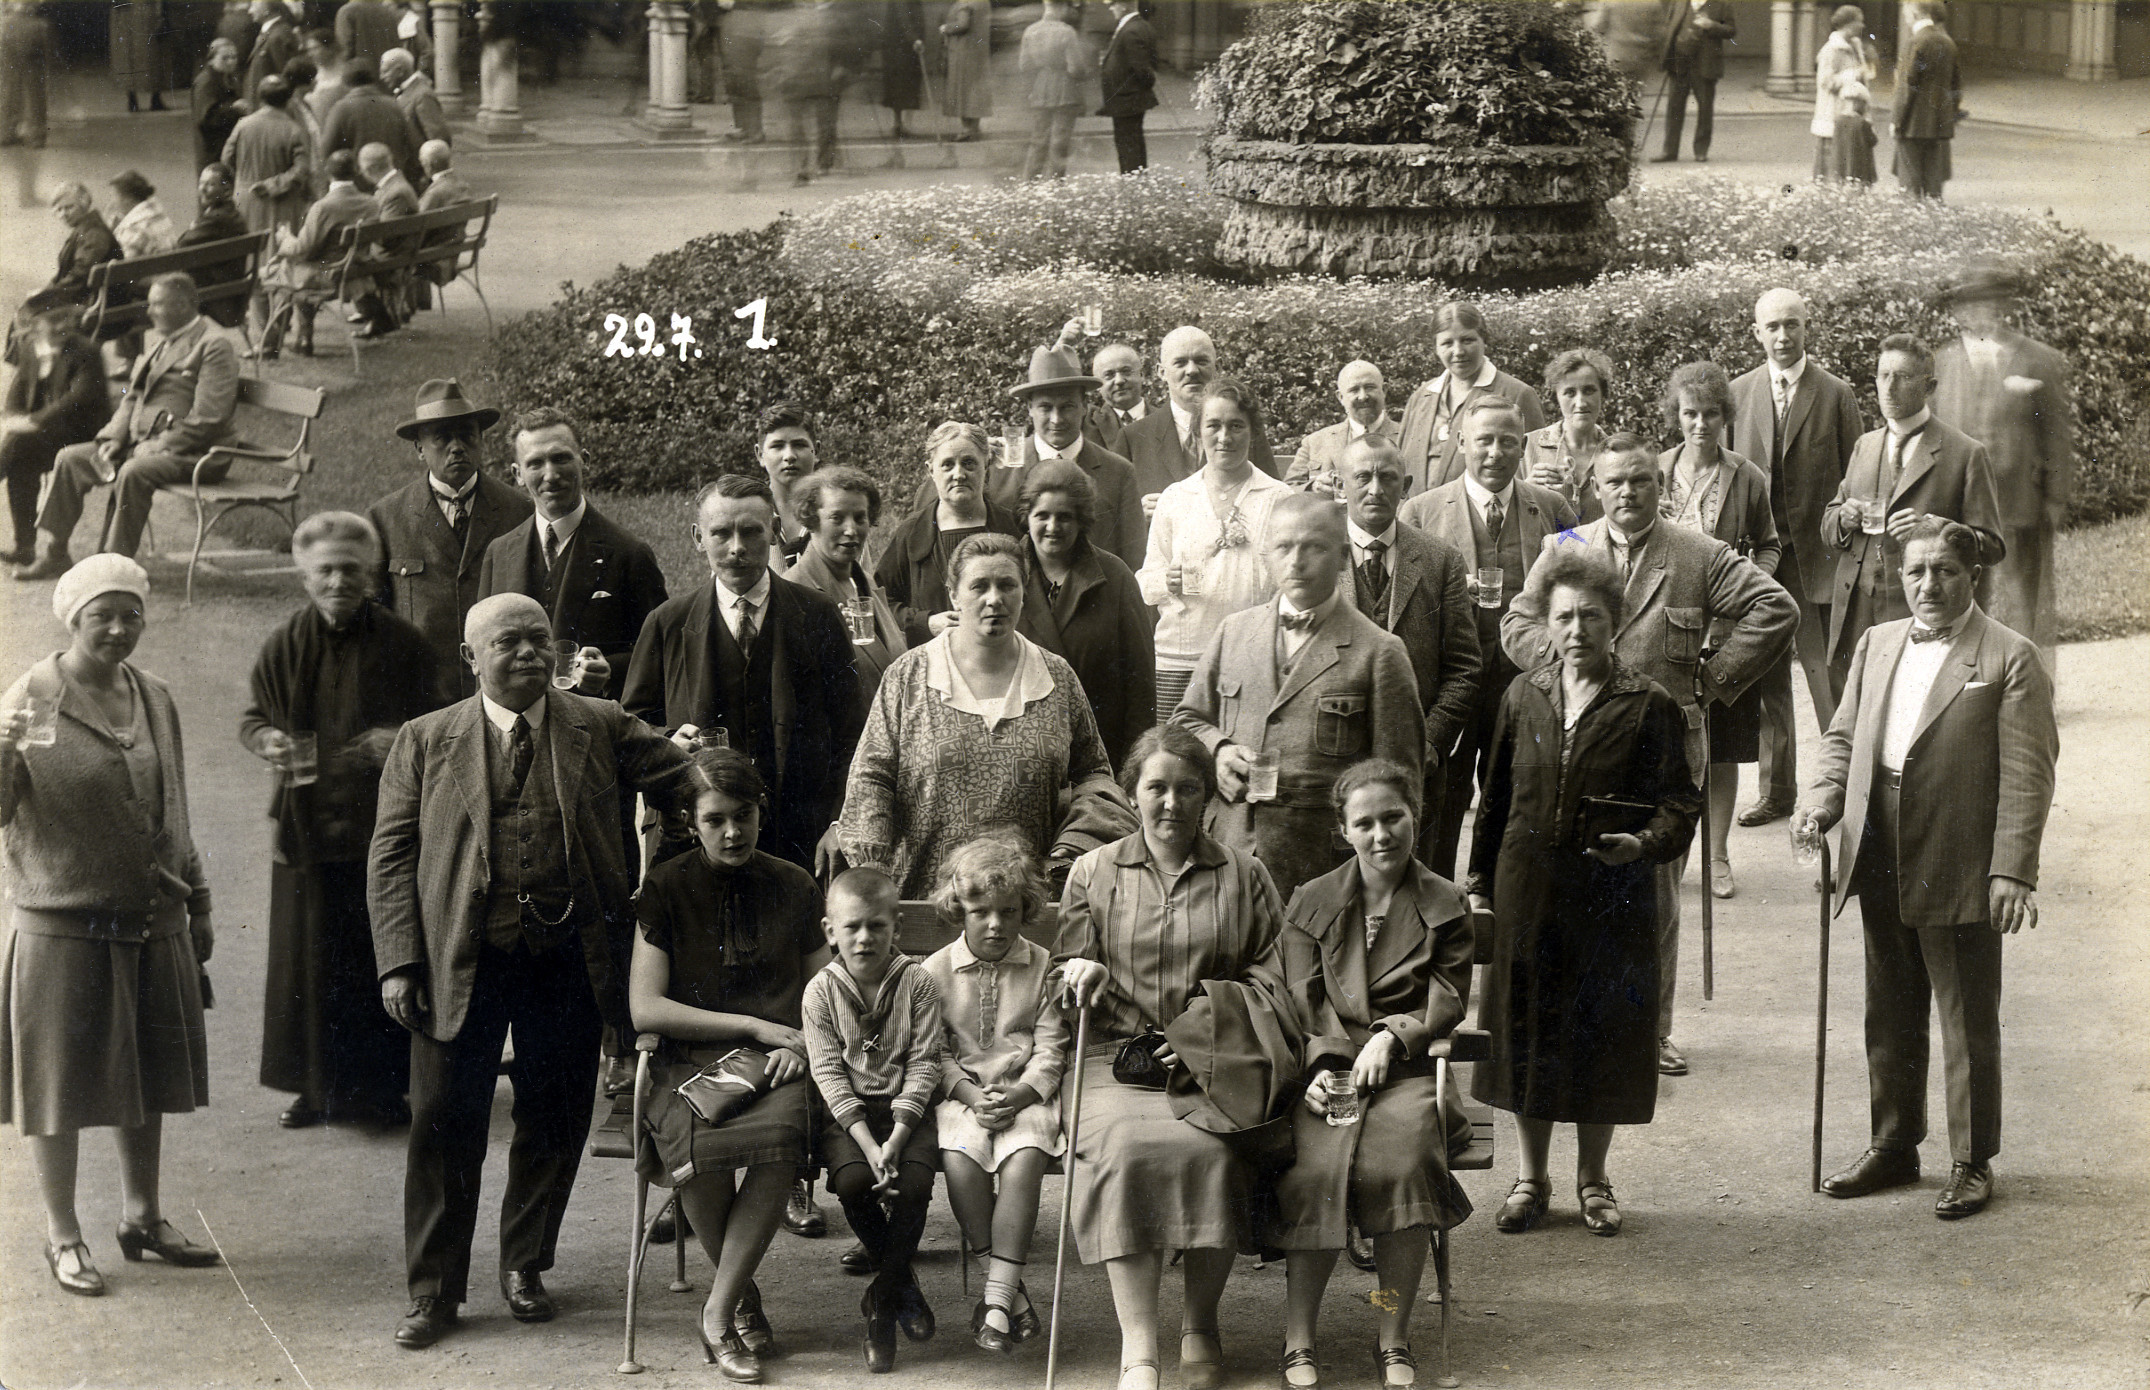 Group portrait of attendees at the the Congress Hazioni.  Among those pictured is Gustava Solnik (wearing dark dress, on the right), who taught for forty years in the Jewish elementary school in Kalisz.